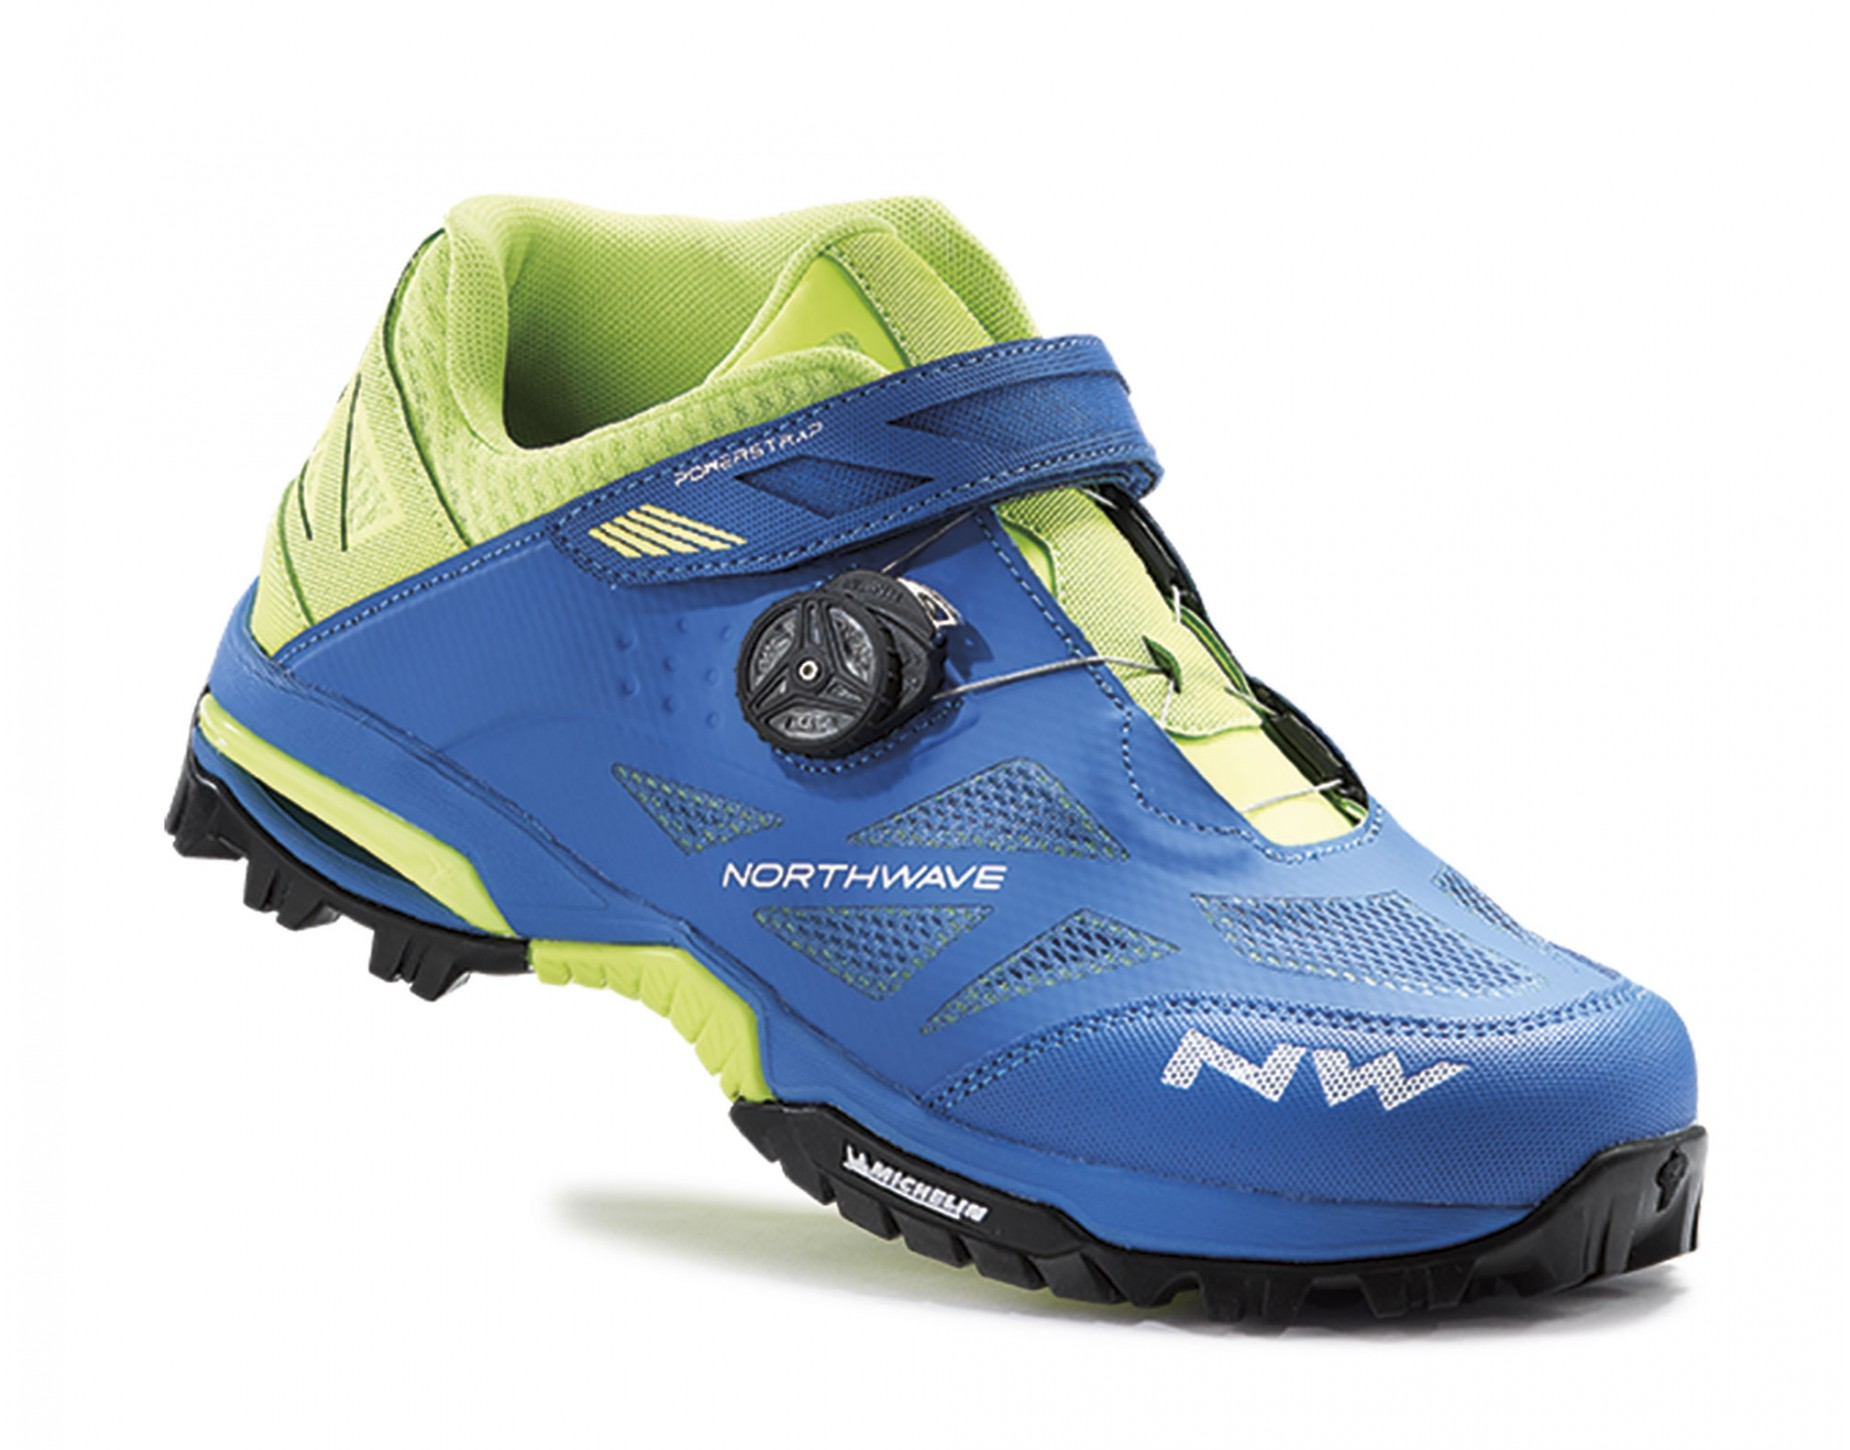 Northwave Enduro Mid Shoe Review